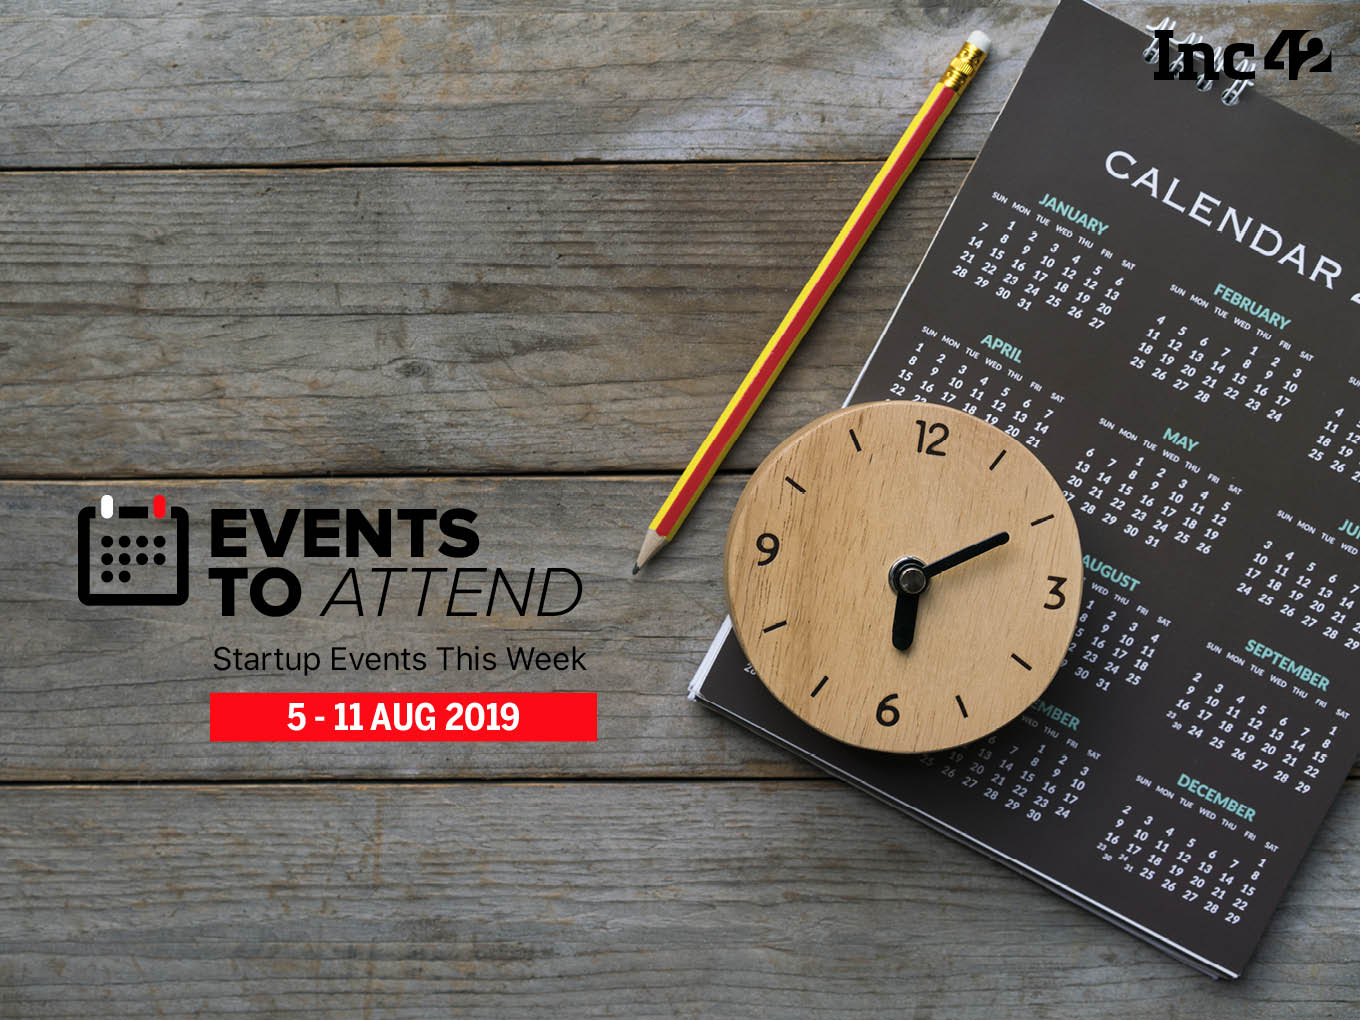 Startup Events This Week: Inc42 Founders Meetup, BIGShift Kochi & More